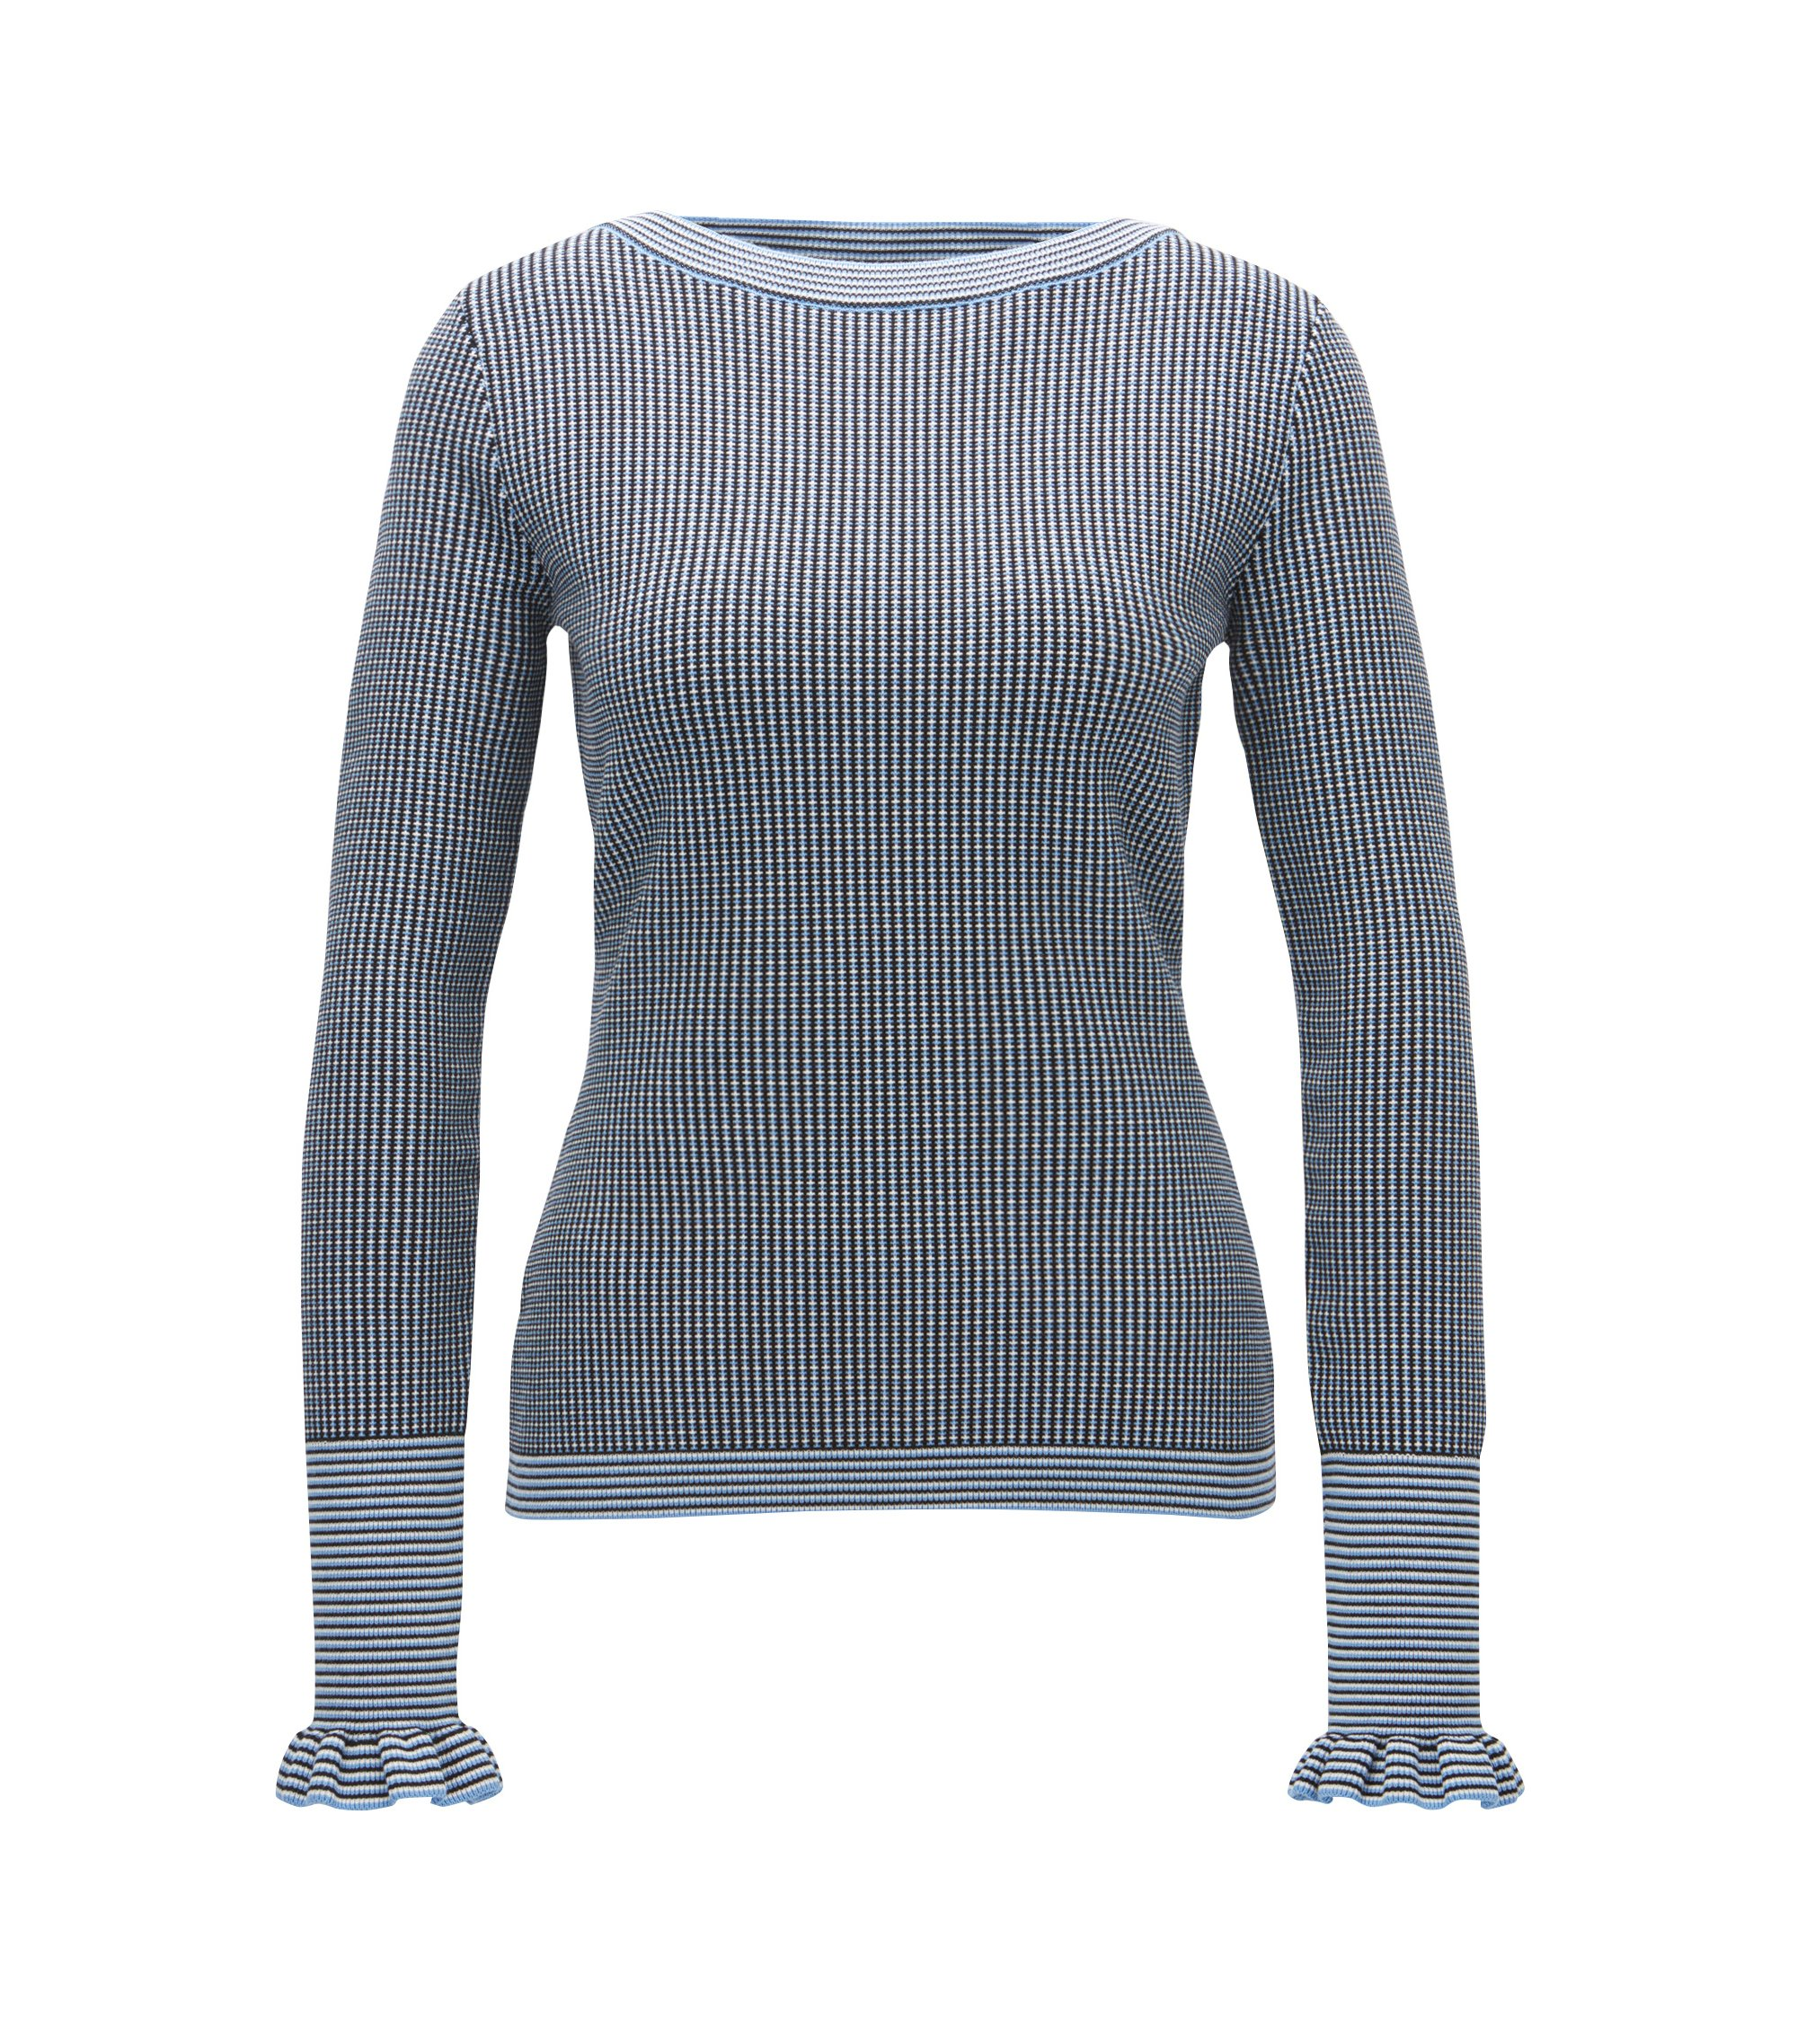 Italian Stretch Sweater | Firusa, Patterned